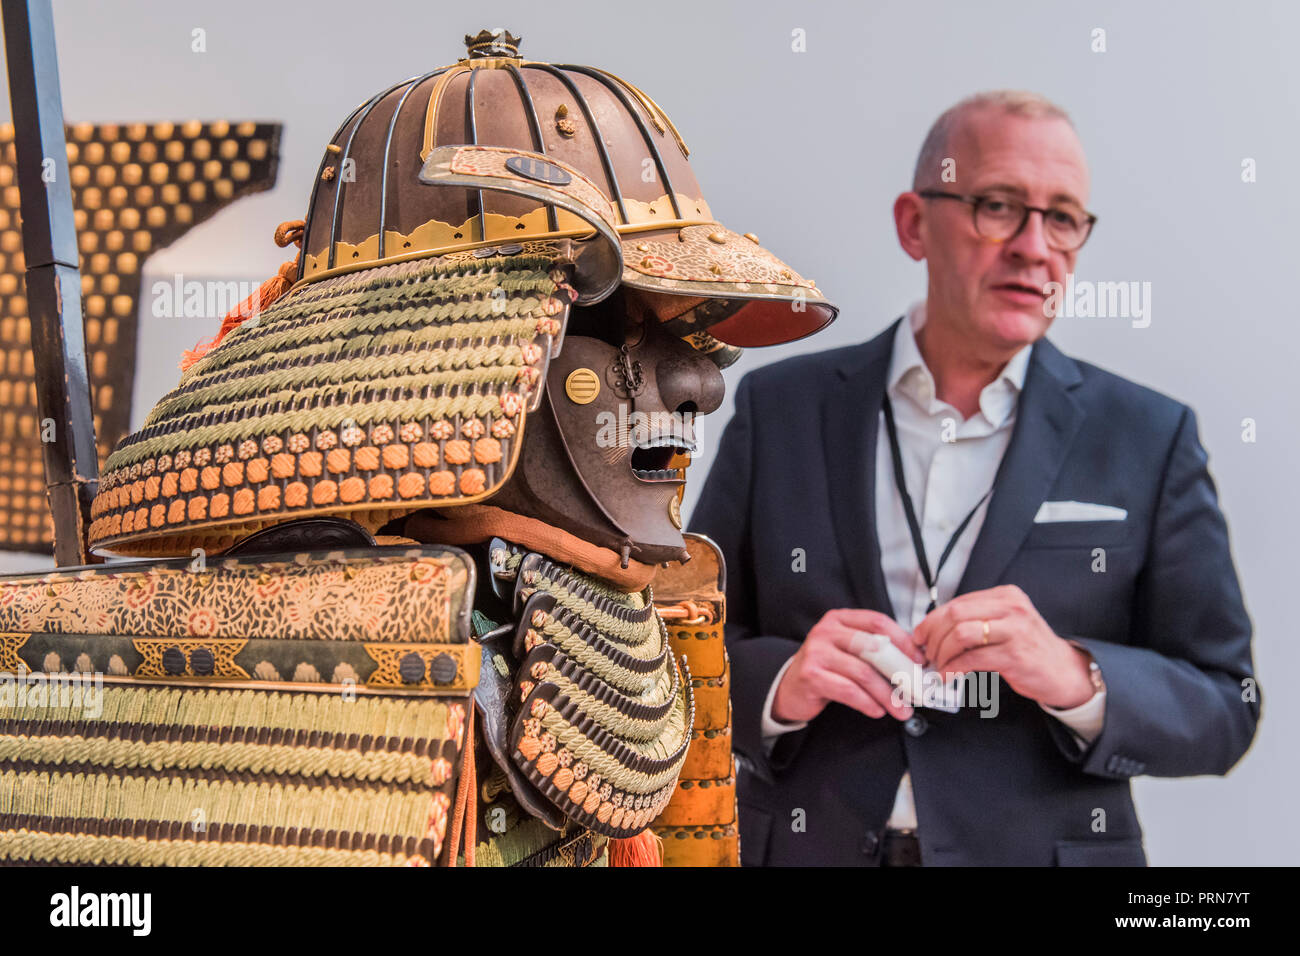 London, UK. 3rd Oct 2018. An 18th century samuri suit of armour in Jean Christophe Charbonner - Frieze Masters London 2018, Regents Park, London. It covers several thousand years of art from 130 of the world's leading modern and historical galleries. The vetted artworks spanning antiquities, Asian art, ethnographic art, illuminated manuscripts, Medieval, modern and post-war, Old Masters and 19th-century, photography and sculpture.  The fair is open to the public 04-07 October. Credit: Guy Bell/Alamy Live News Stock Photo